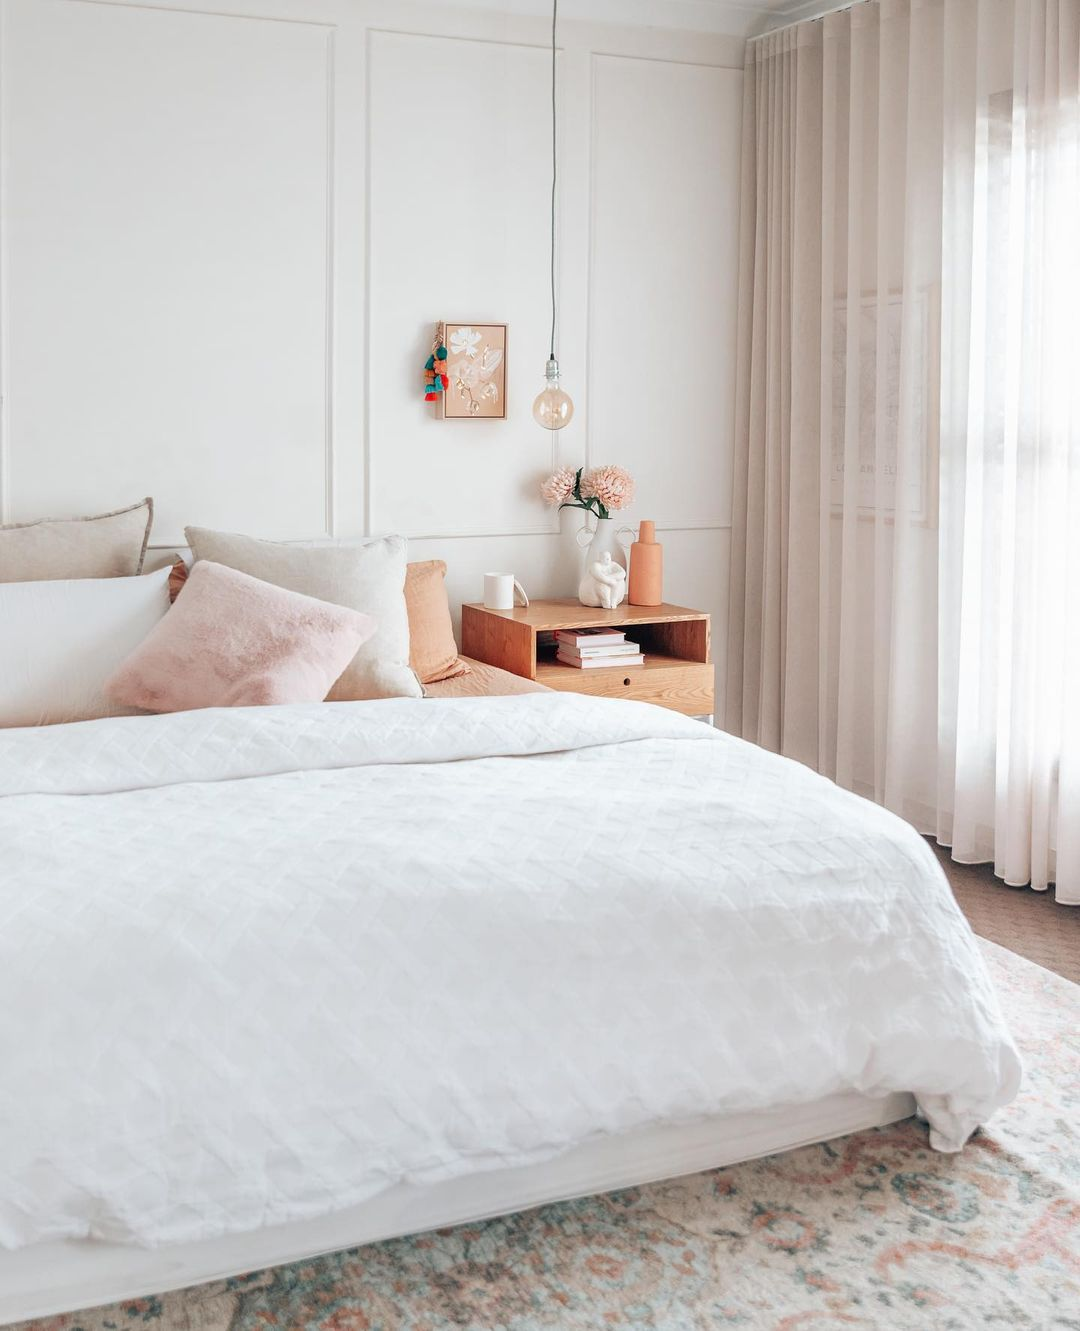 Neutral bedroom with pink and peach accents.